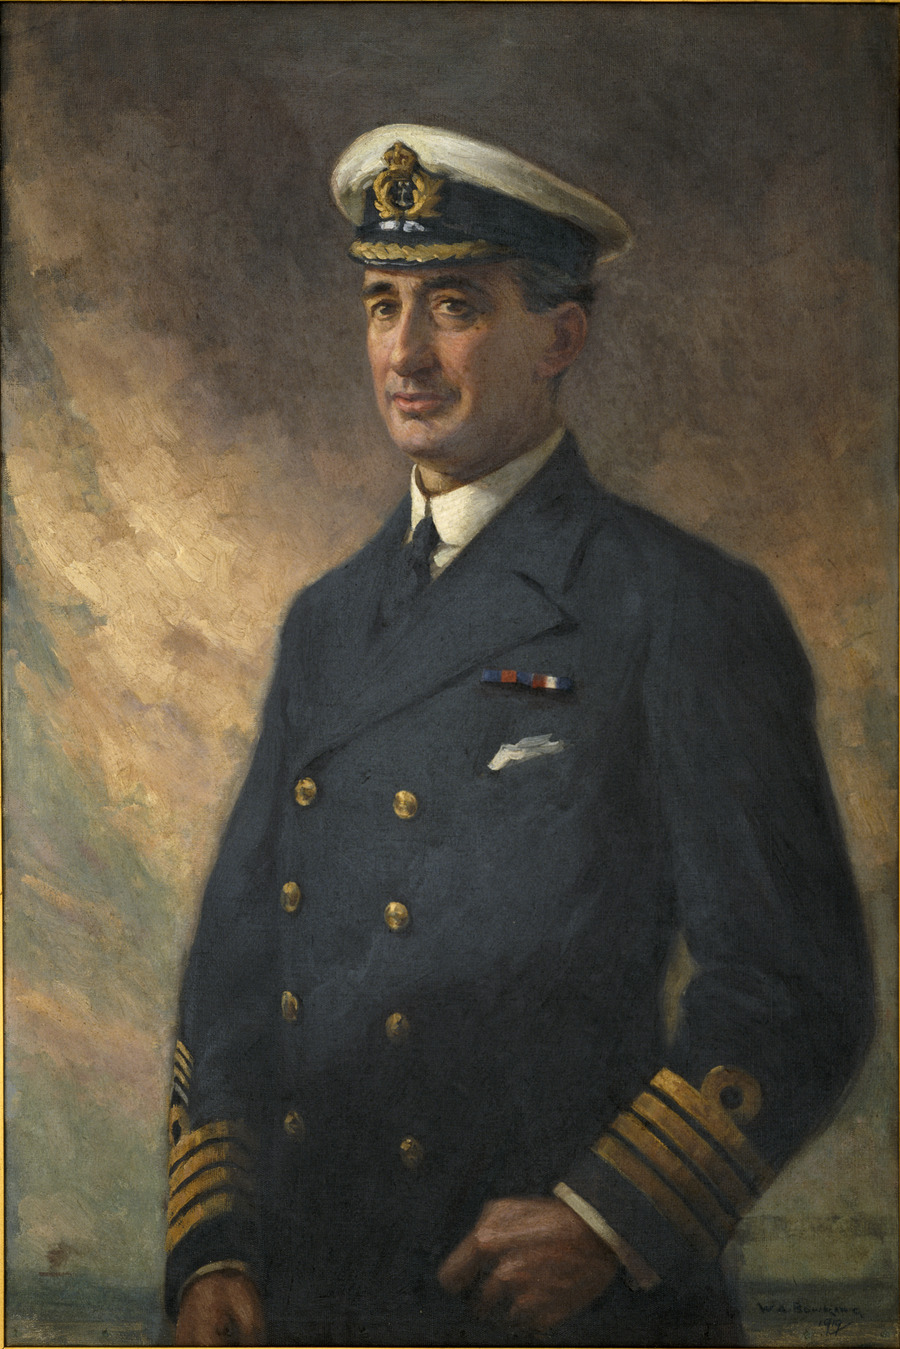 Captain Henry Percival Hall Thompson, CMG, RN